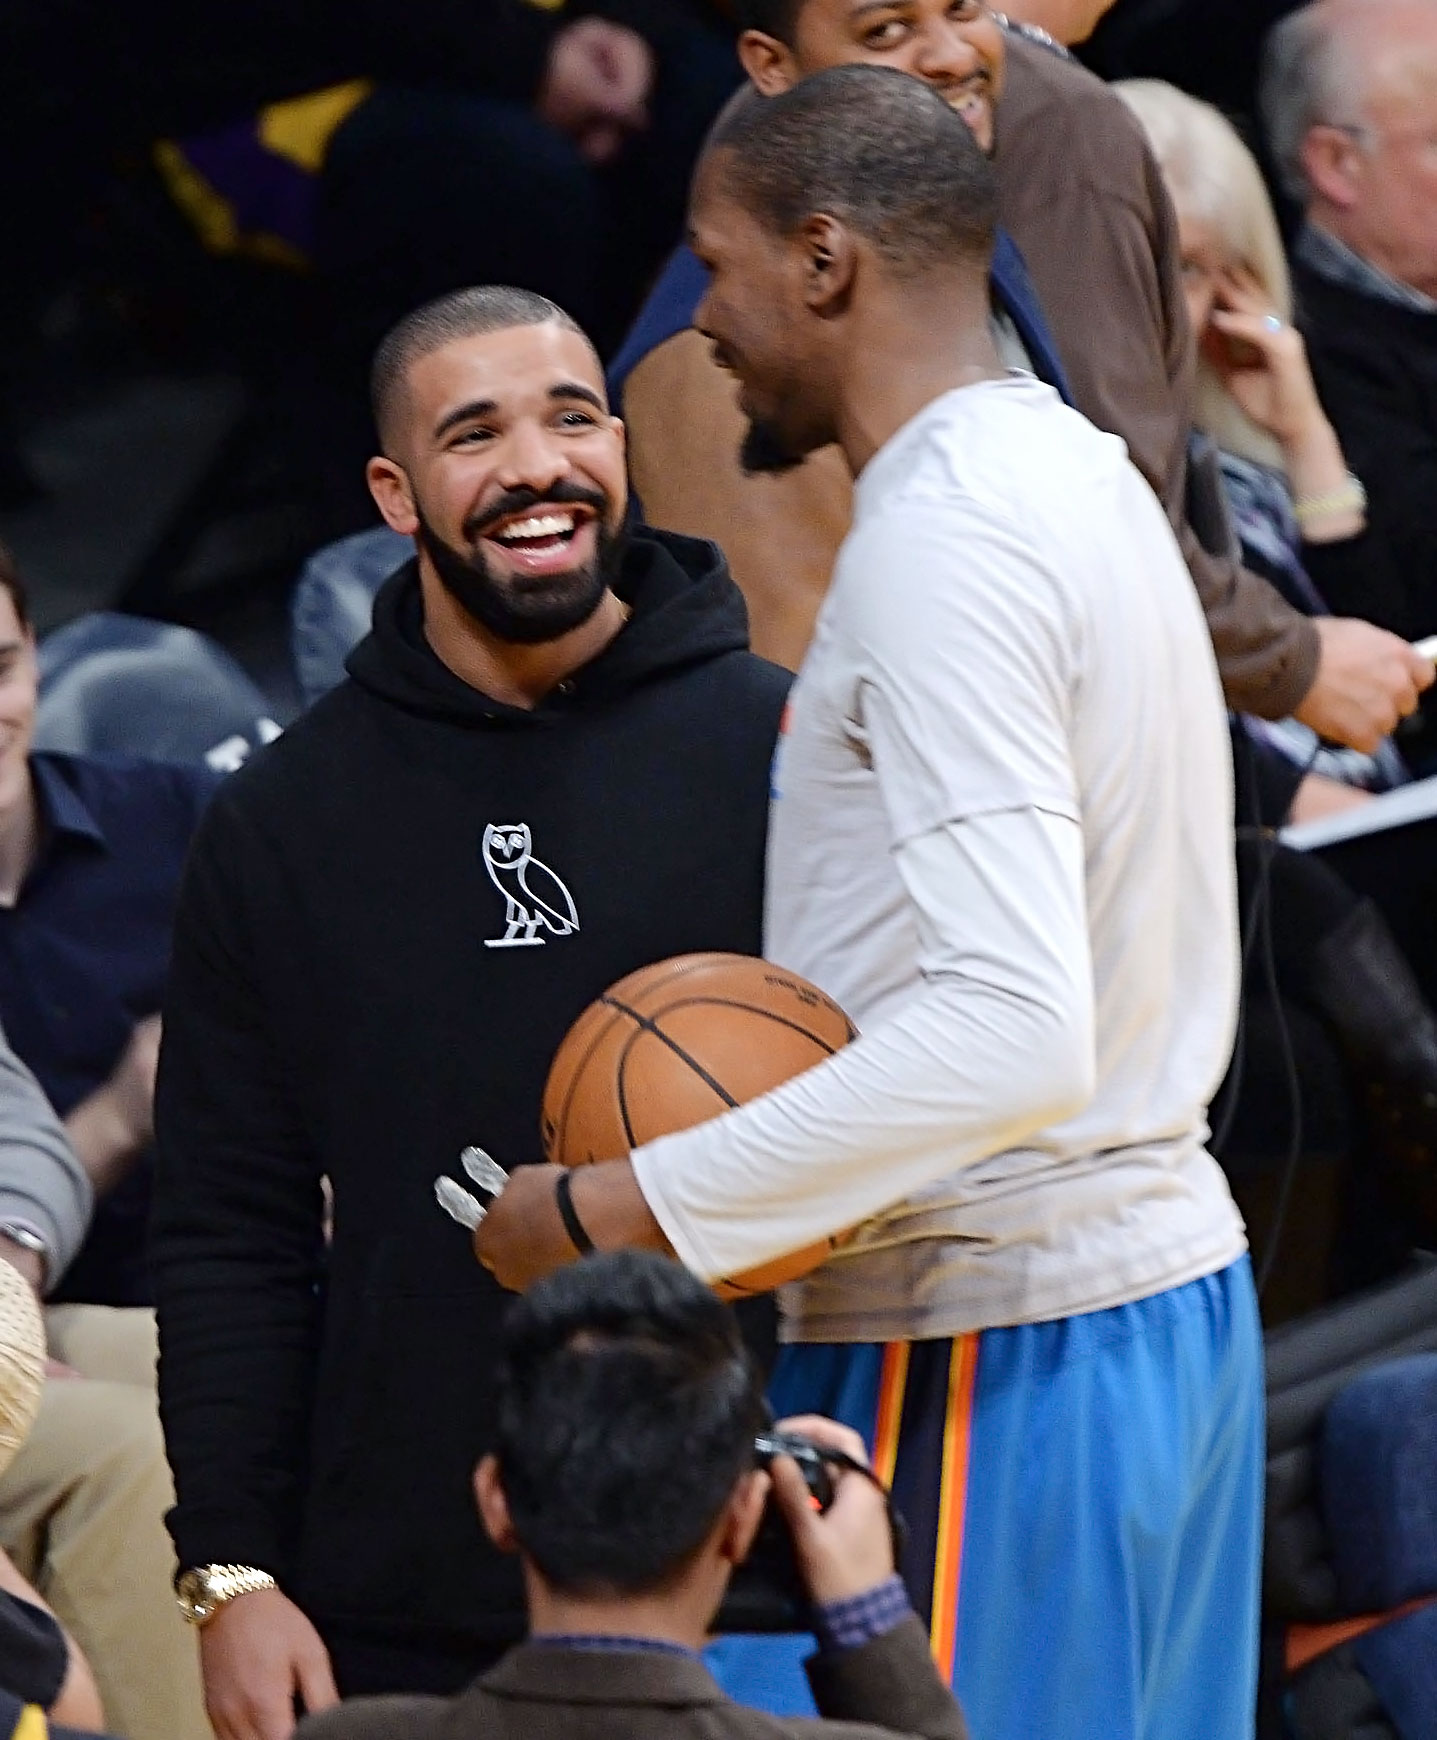 Drake Self-Quarantines After Kevin Durant Hangout: Report